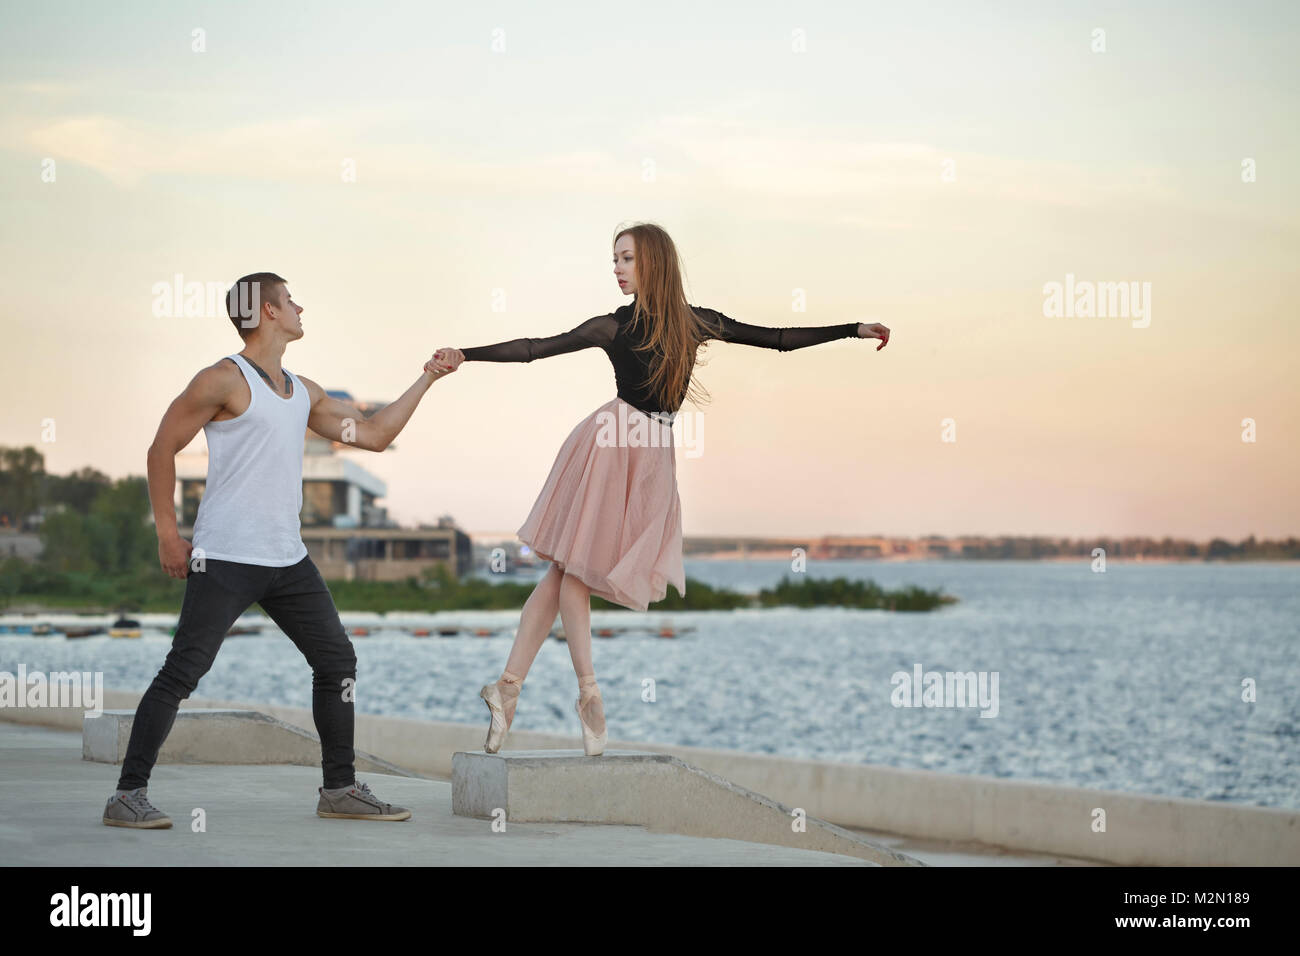 A slender ballerina and her boyfriend dance on the street. He holds her hand. She stands on tiptoe. - Stock Image